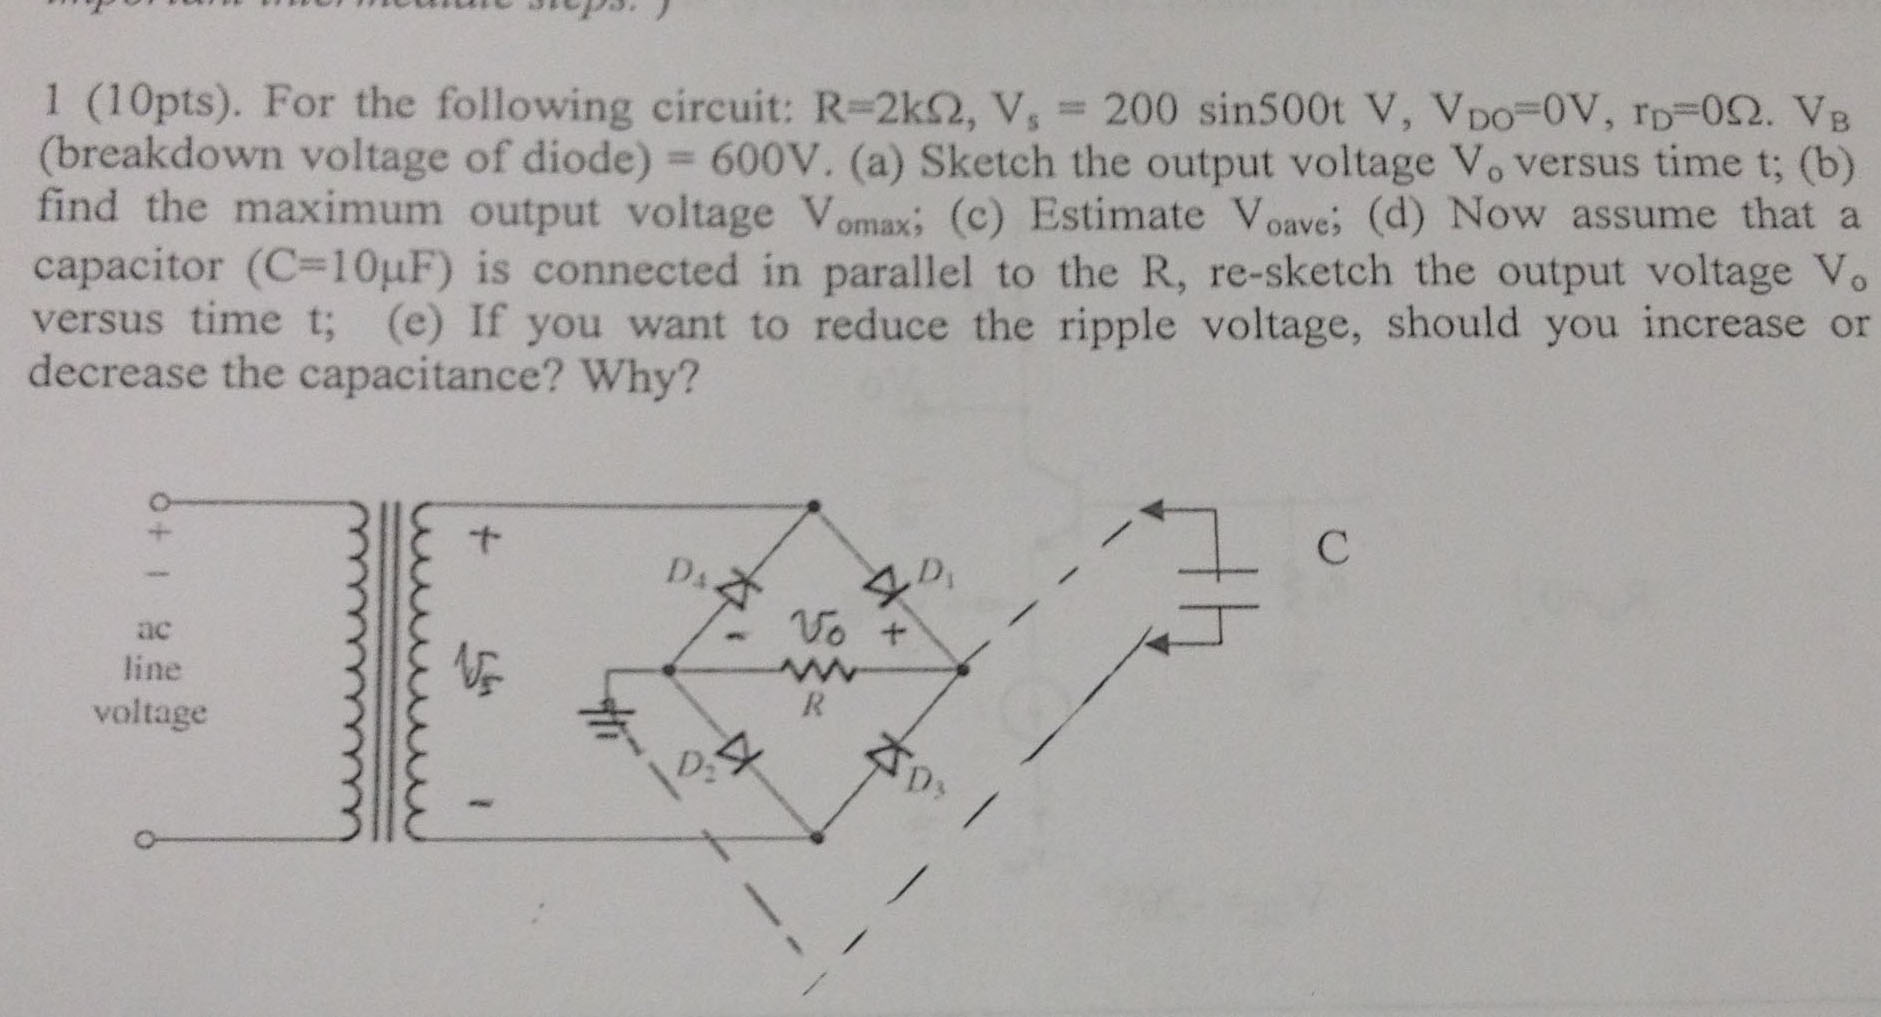 For the following circuit: R=2k Ohm, Vs = 200 si